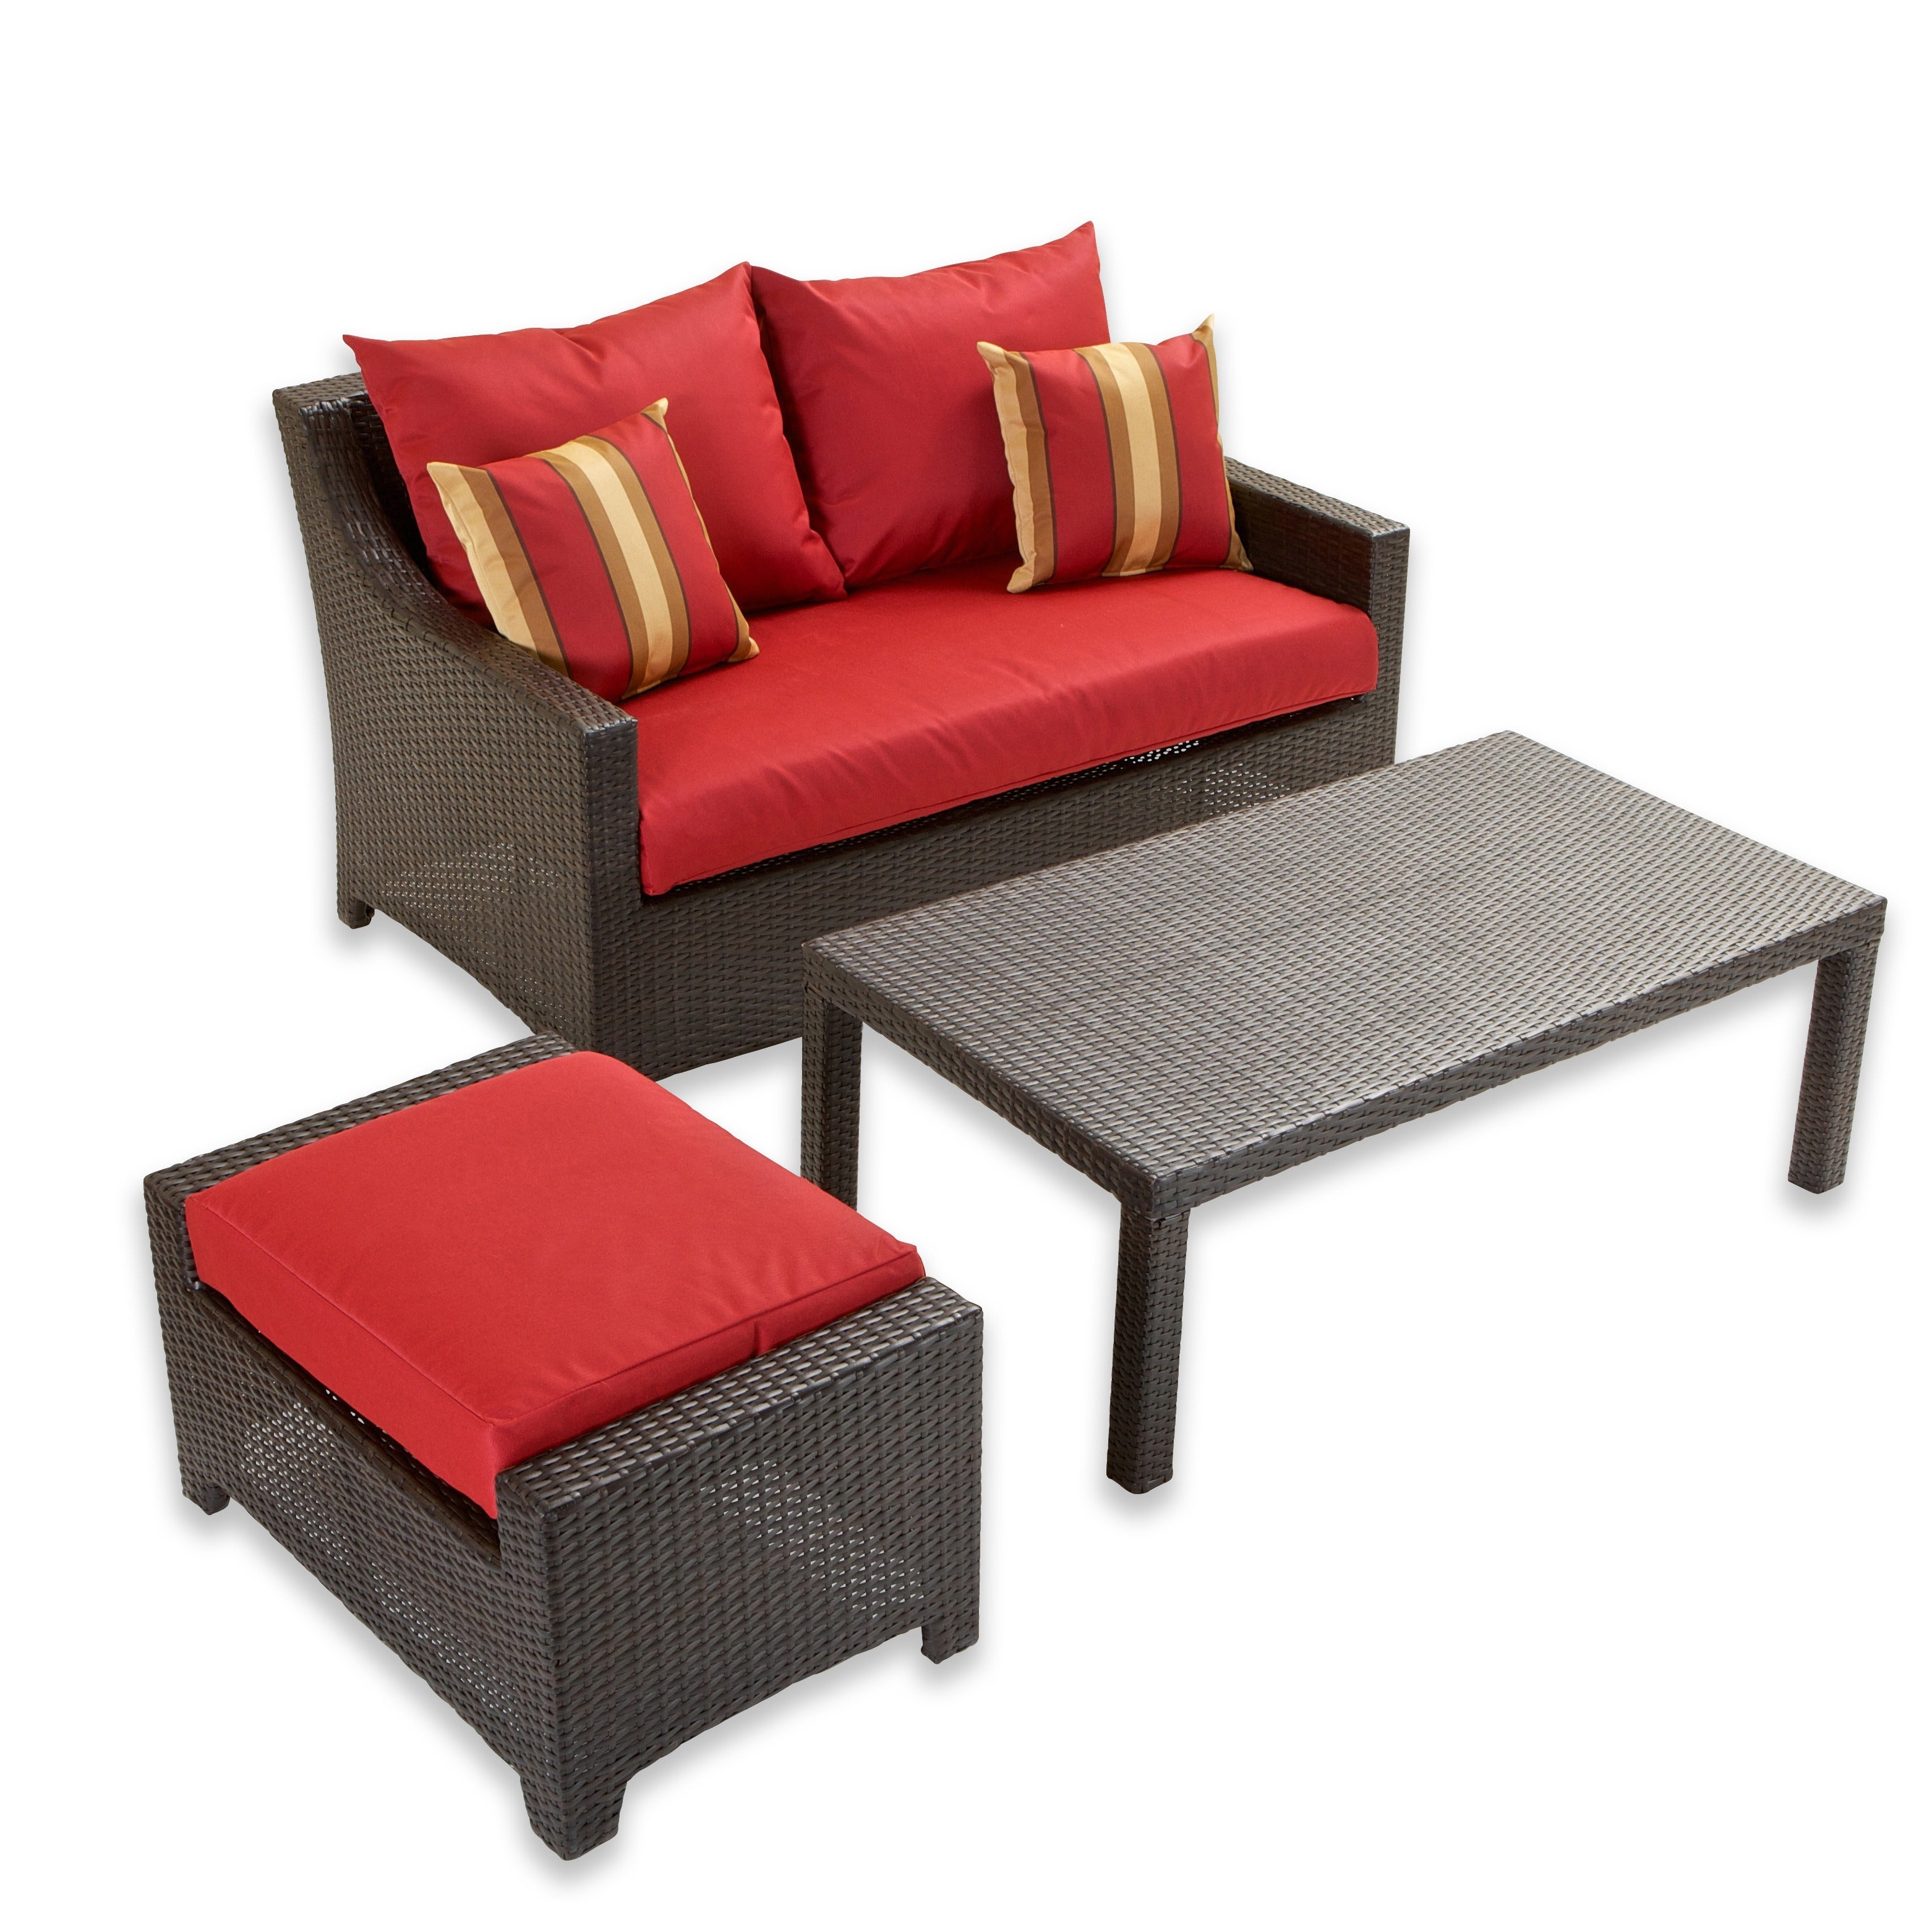 RST Brands Cantina 3 piece Outdoor Furniture Set Free Shipping